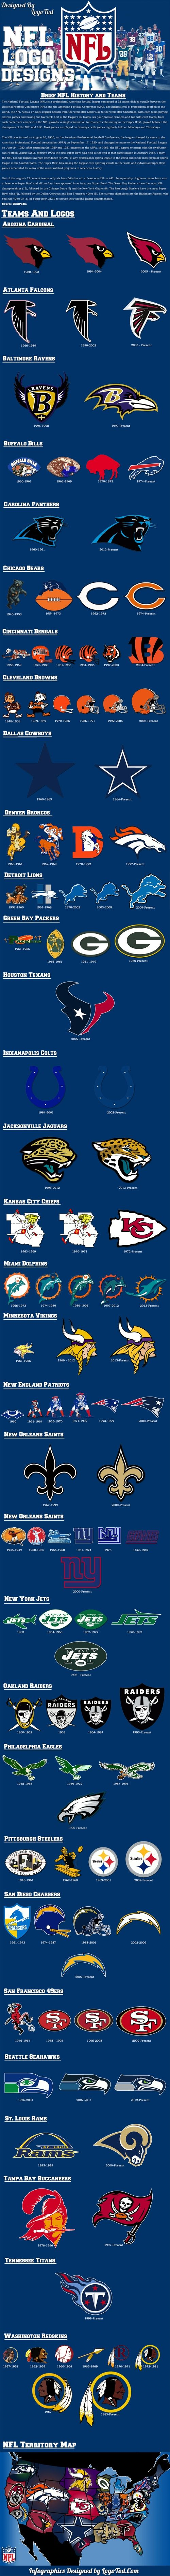 The History of NFL LogoDesigns - Blog About Infographics and Data Visualization - Cool Infographics